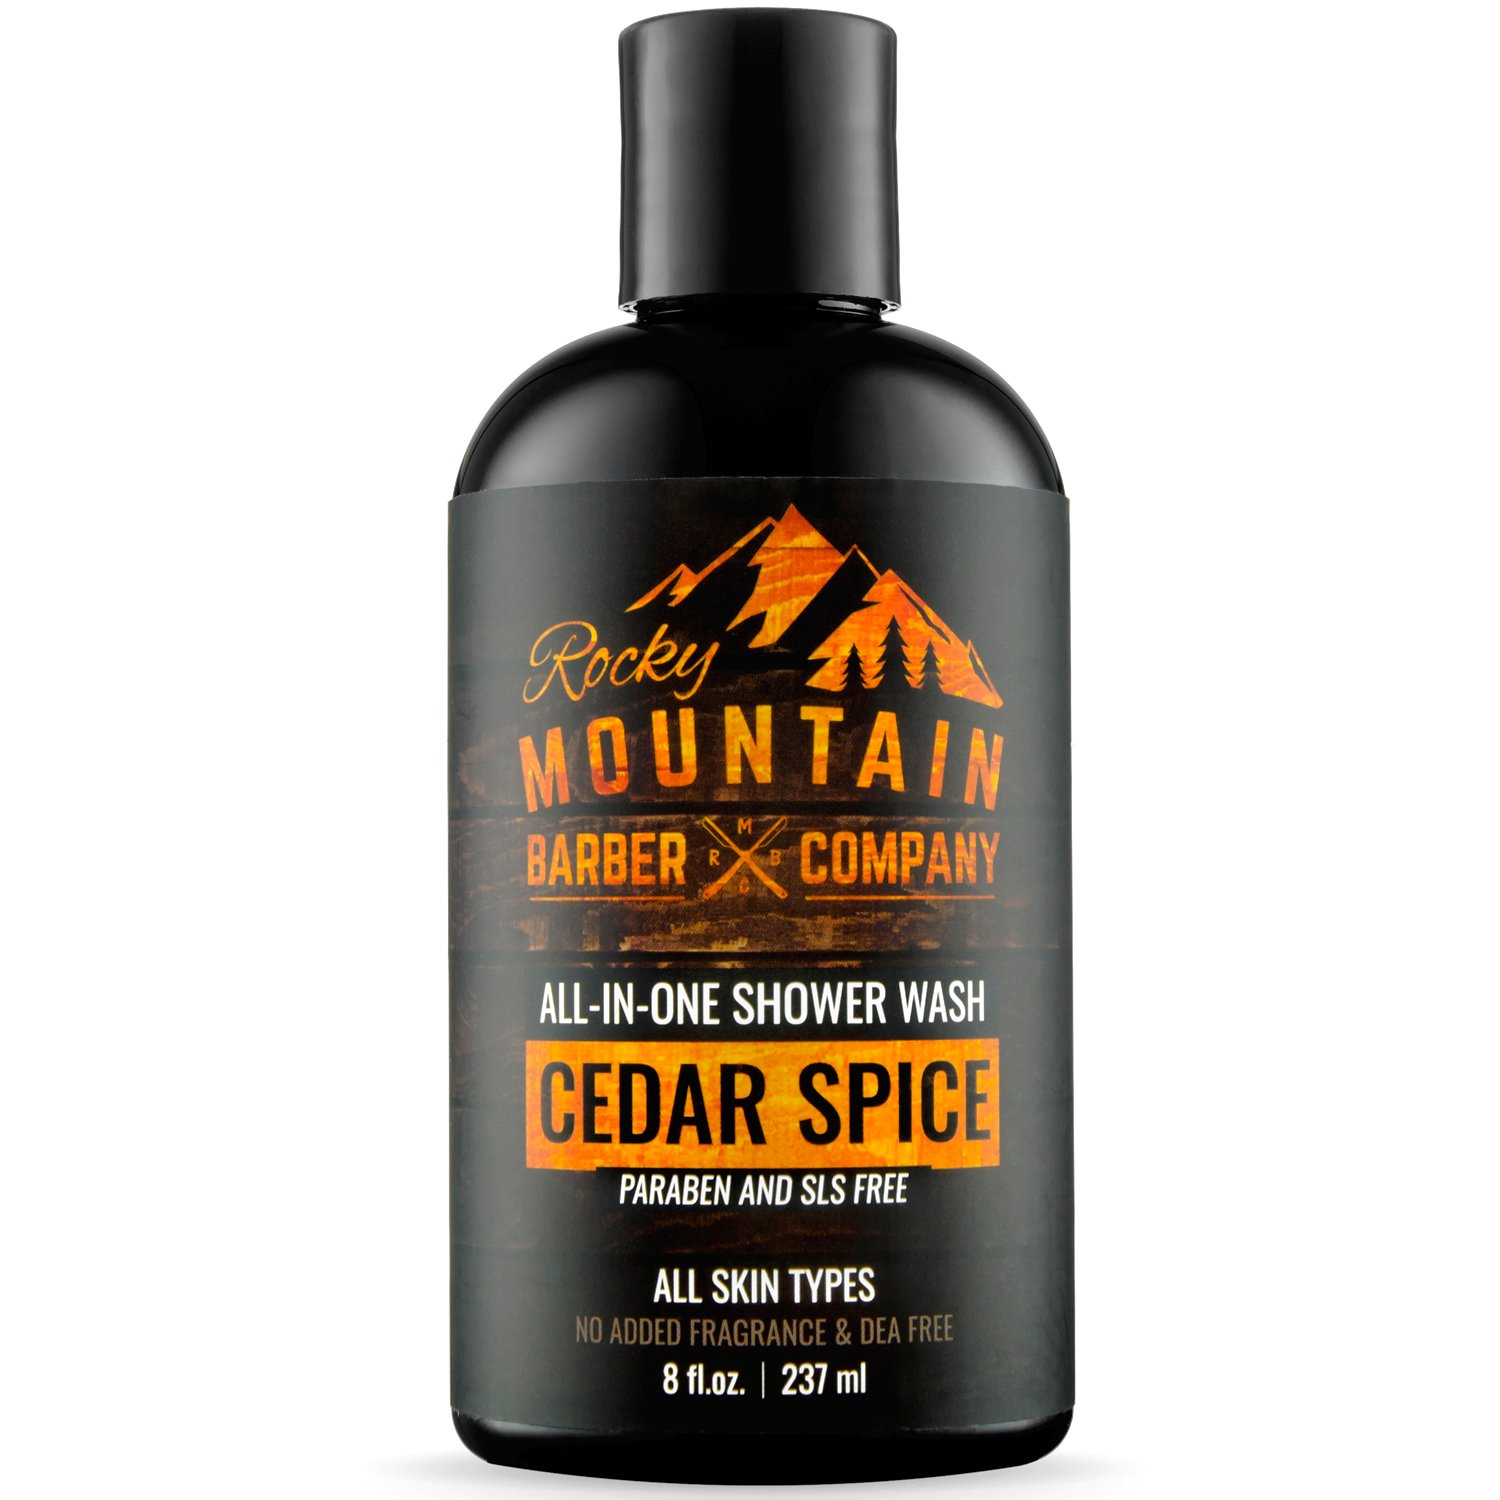 All-in-One Shower Wash for Men - Canadian Made Shampoo, Body Wash, Conditioner, Face Wash & Beard Wash with Essential Oils - Cedar Spice Scent - 8 oz Rocky Mountain Barber Company